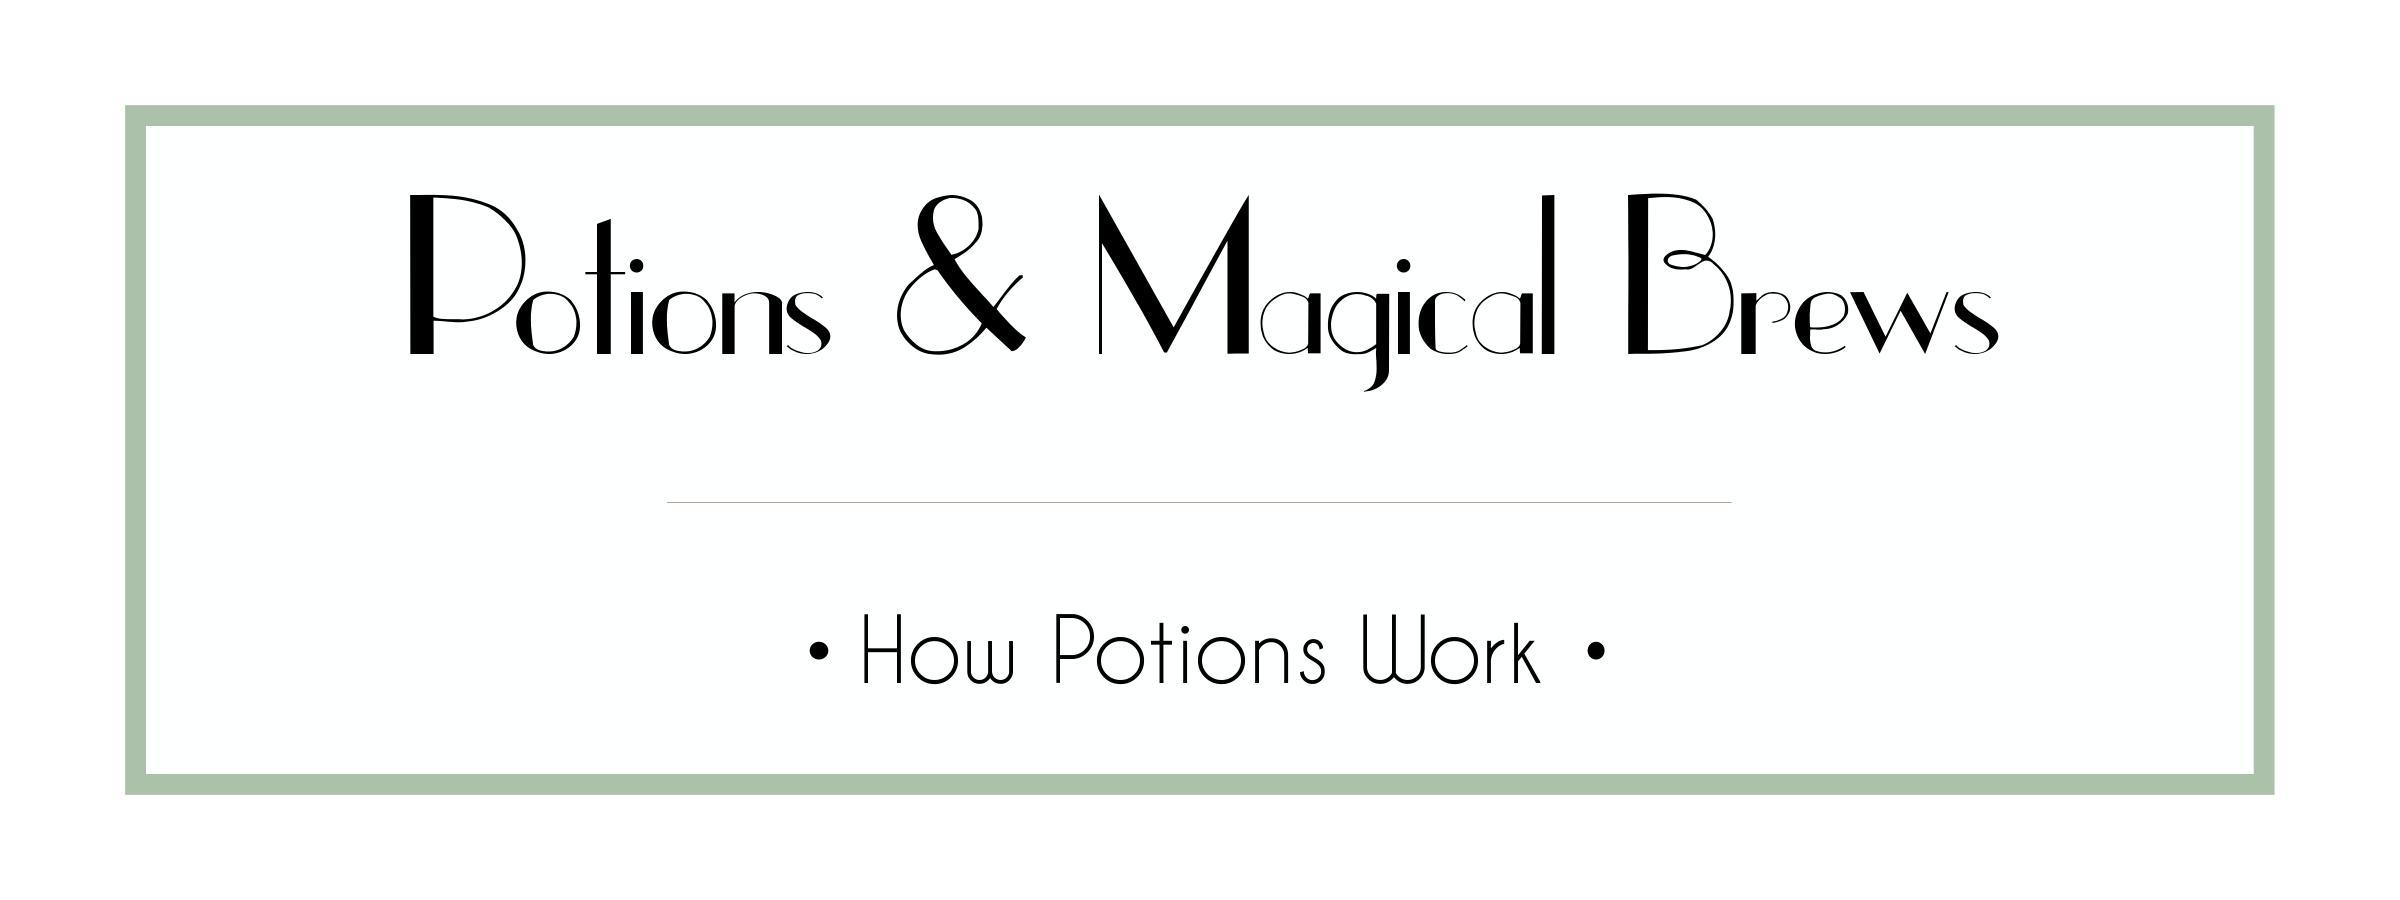 Potions & Magical Brews - How Potions Work